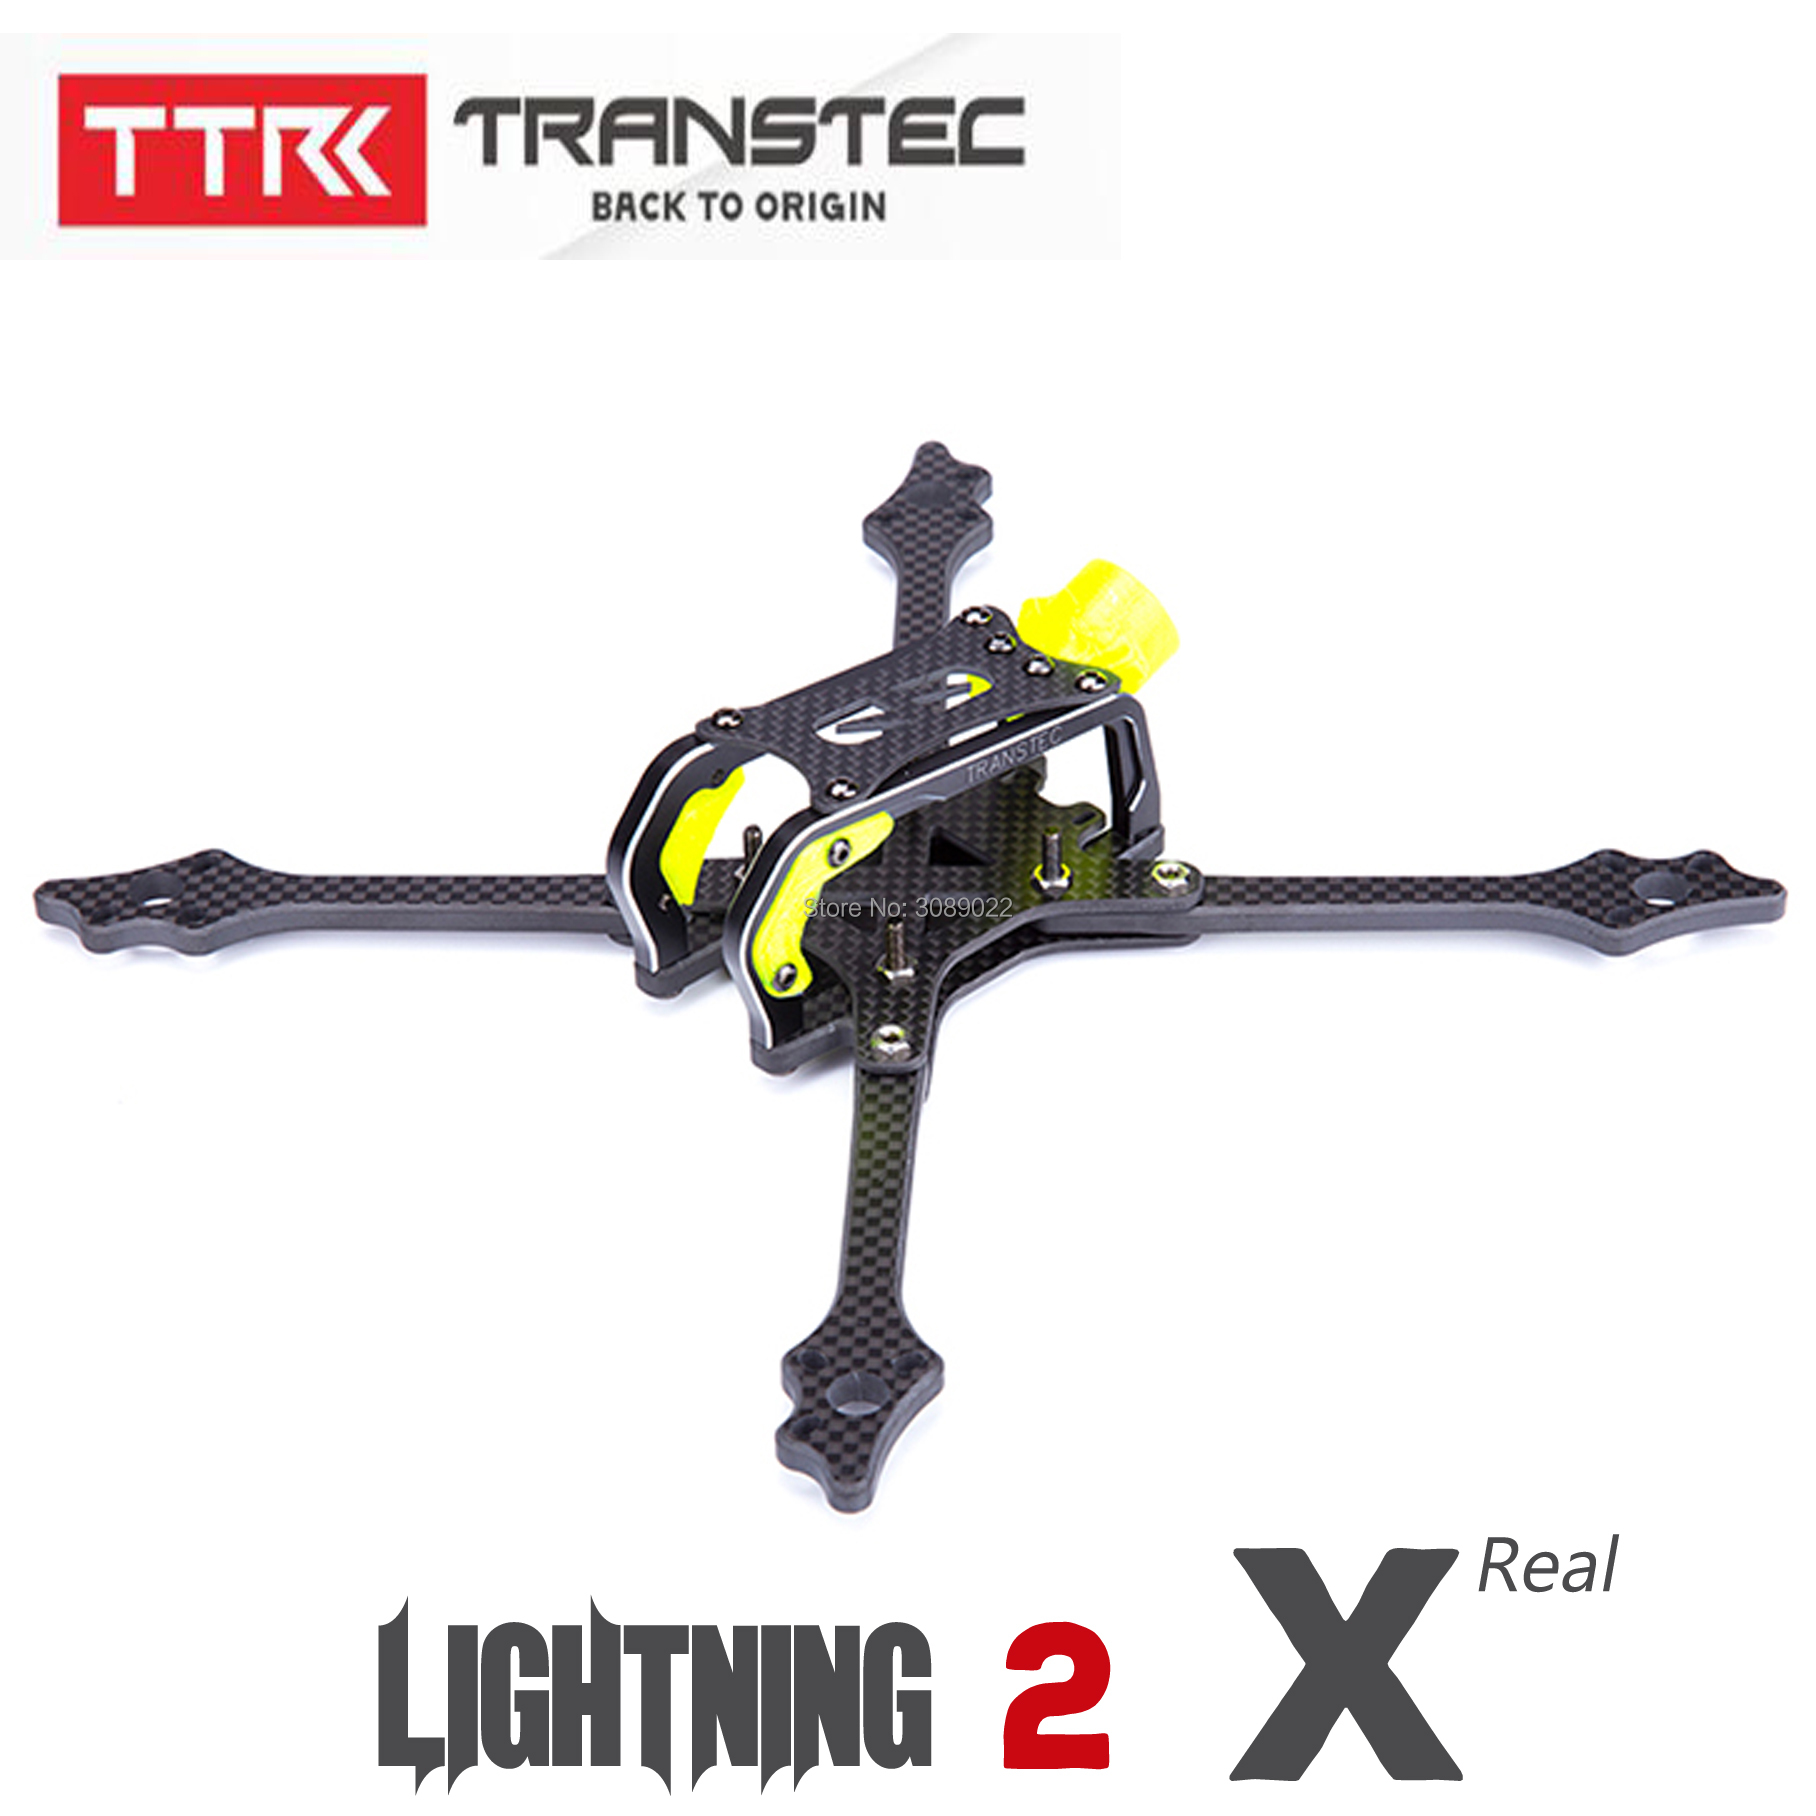 TRANSTEC TransTEC Lightning 2 215mm FPV Quadcopter Frame 5mm Arm 7075 CNC Carbon Fiber Frame Kit